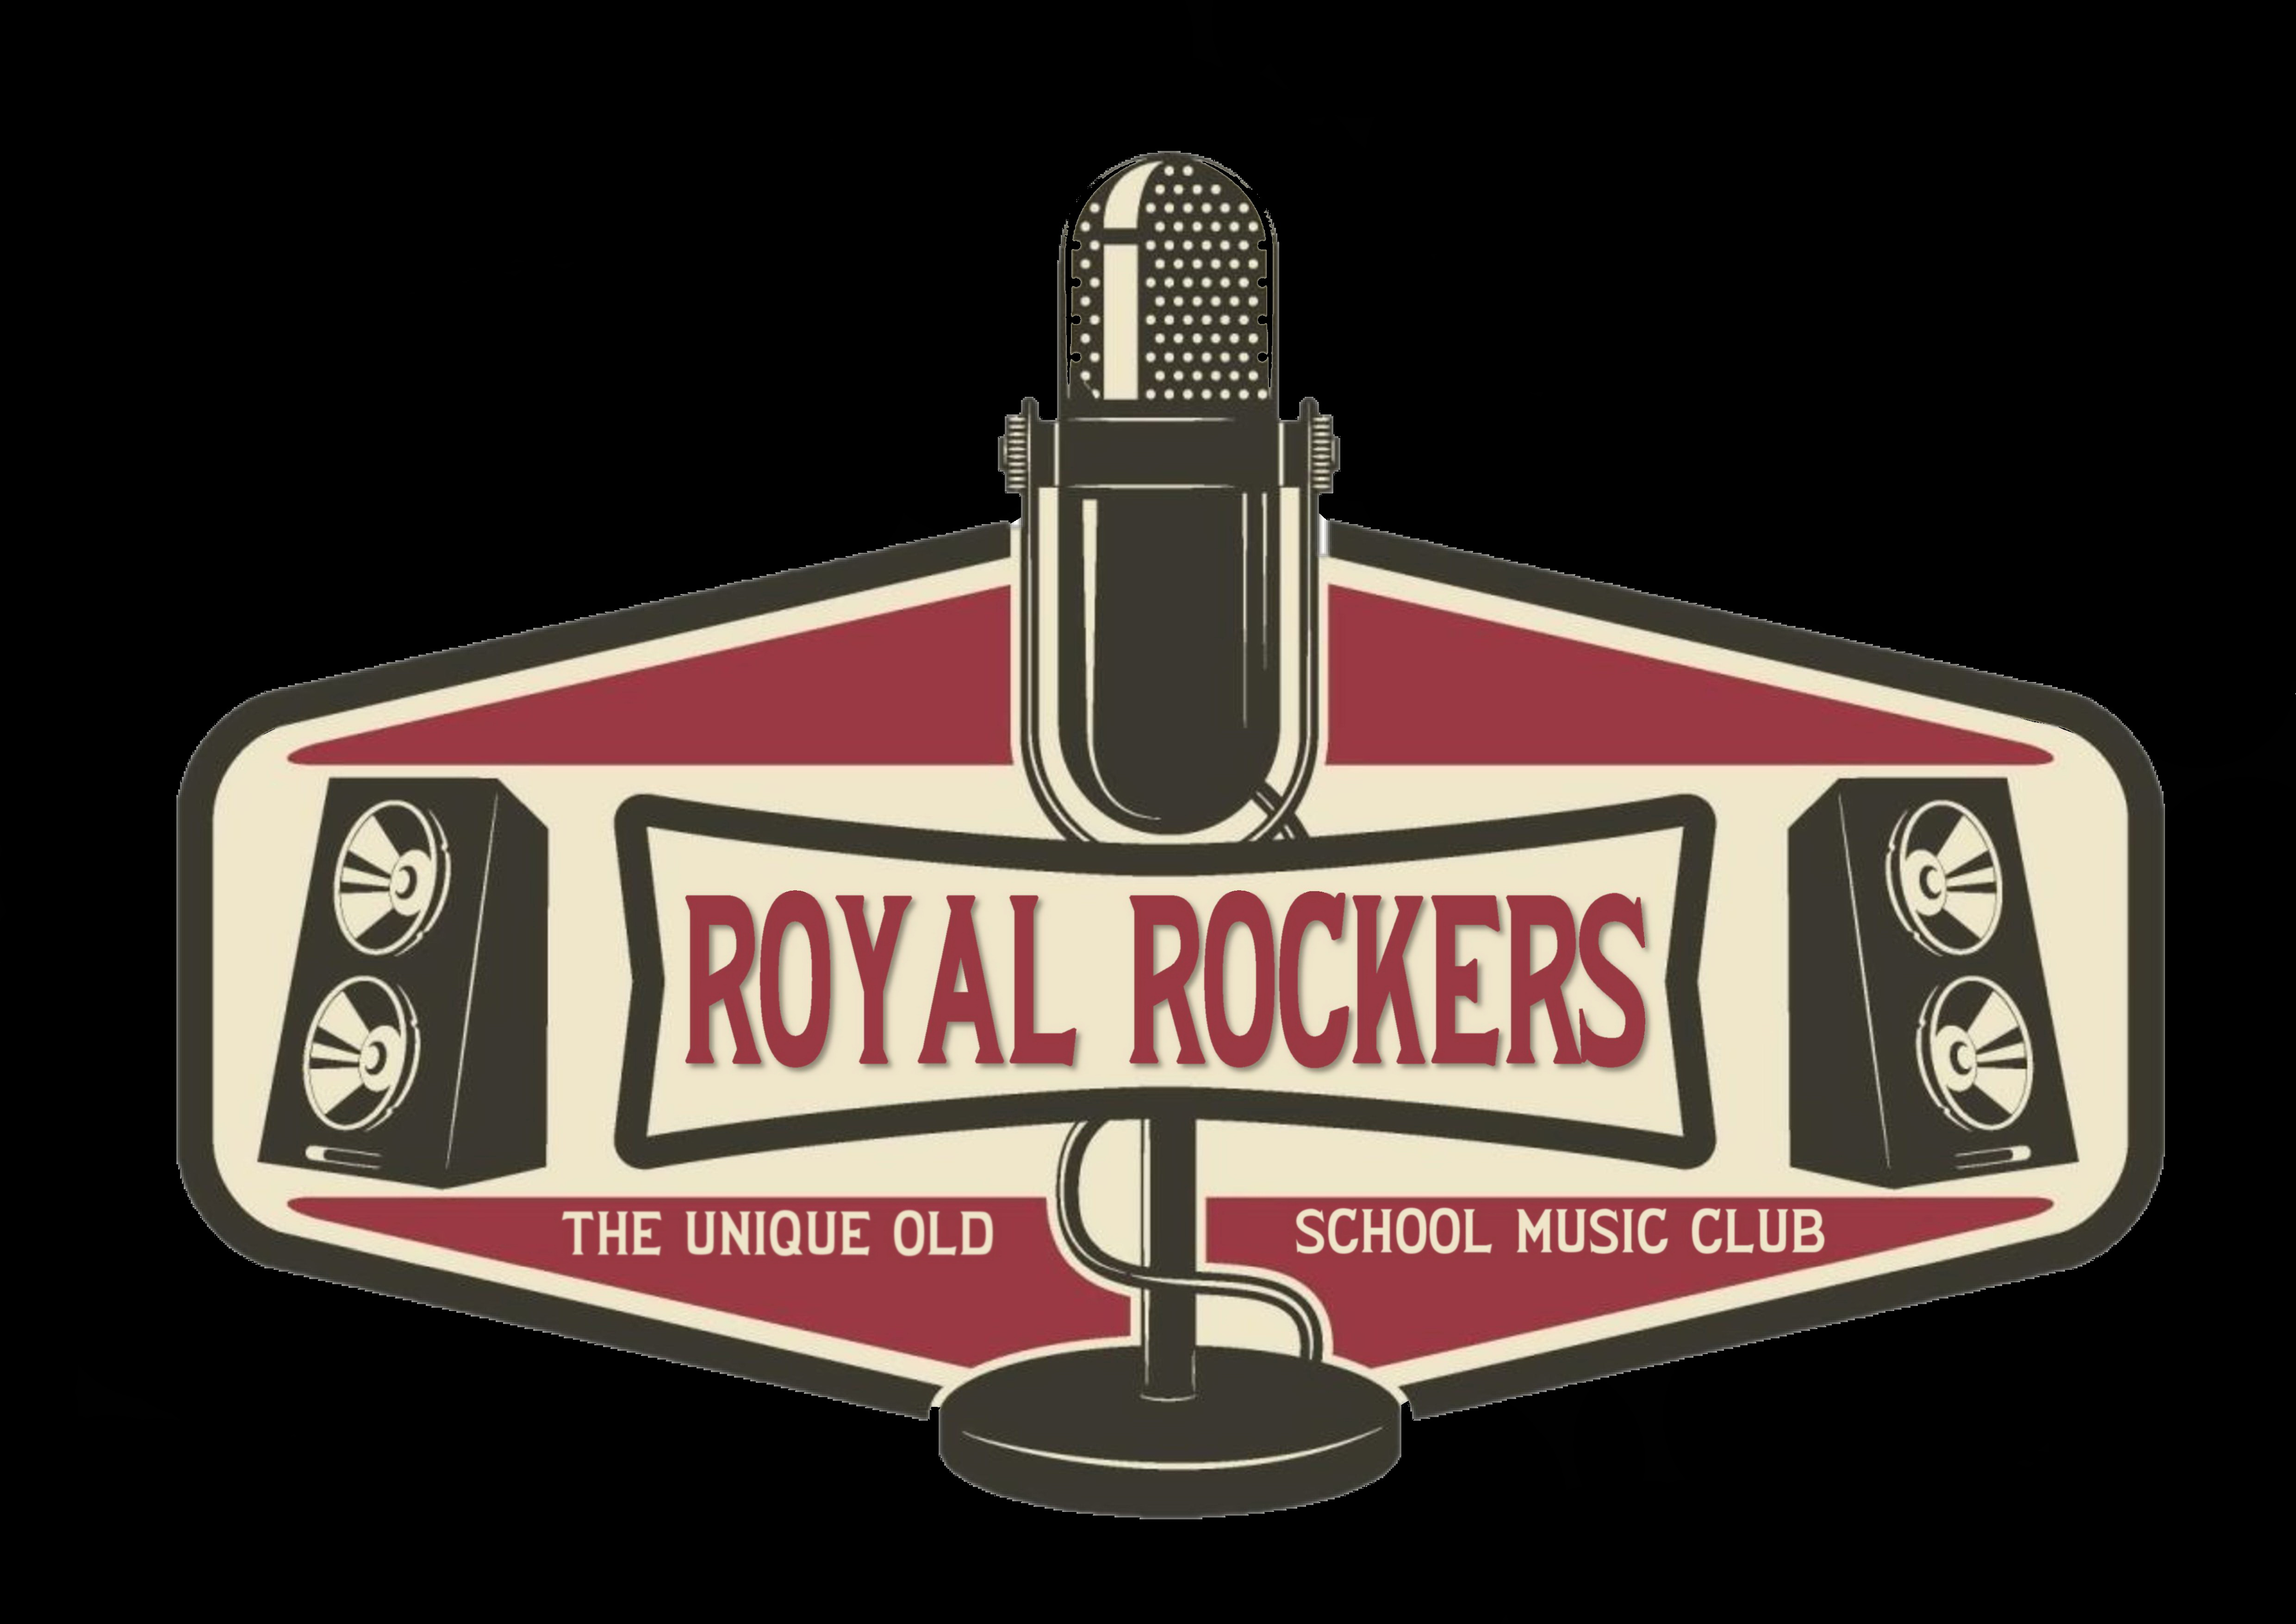 Welcom to Royal Rockers